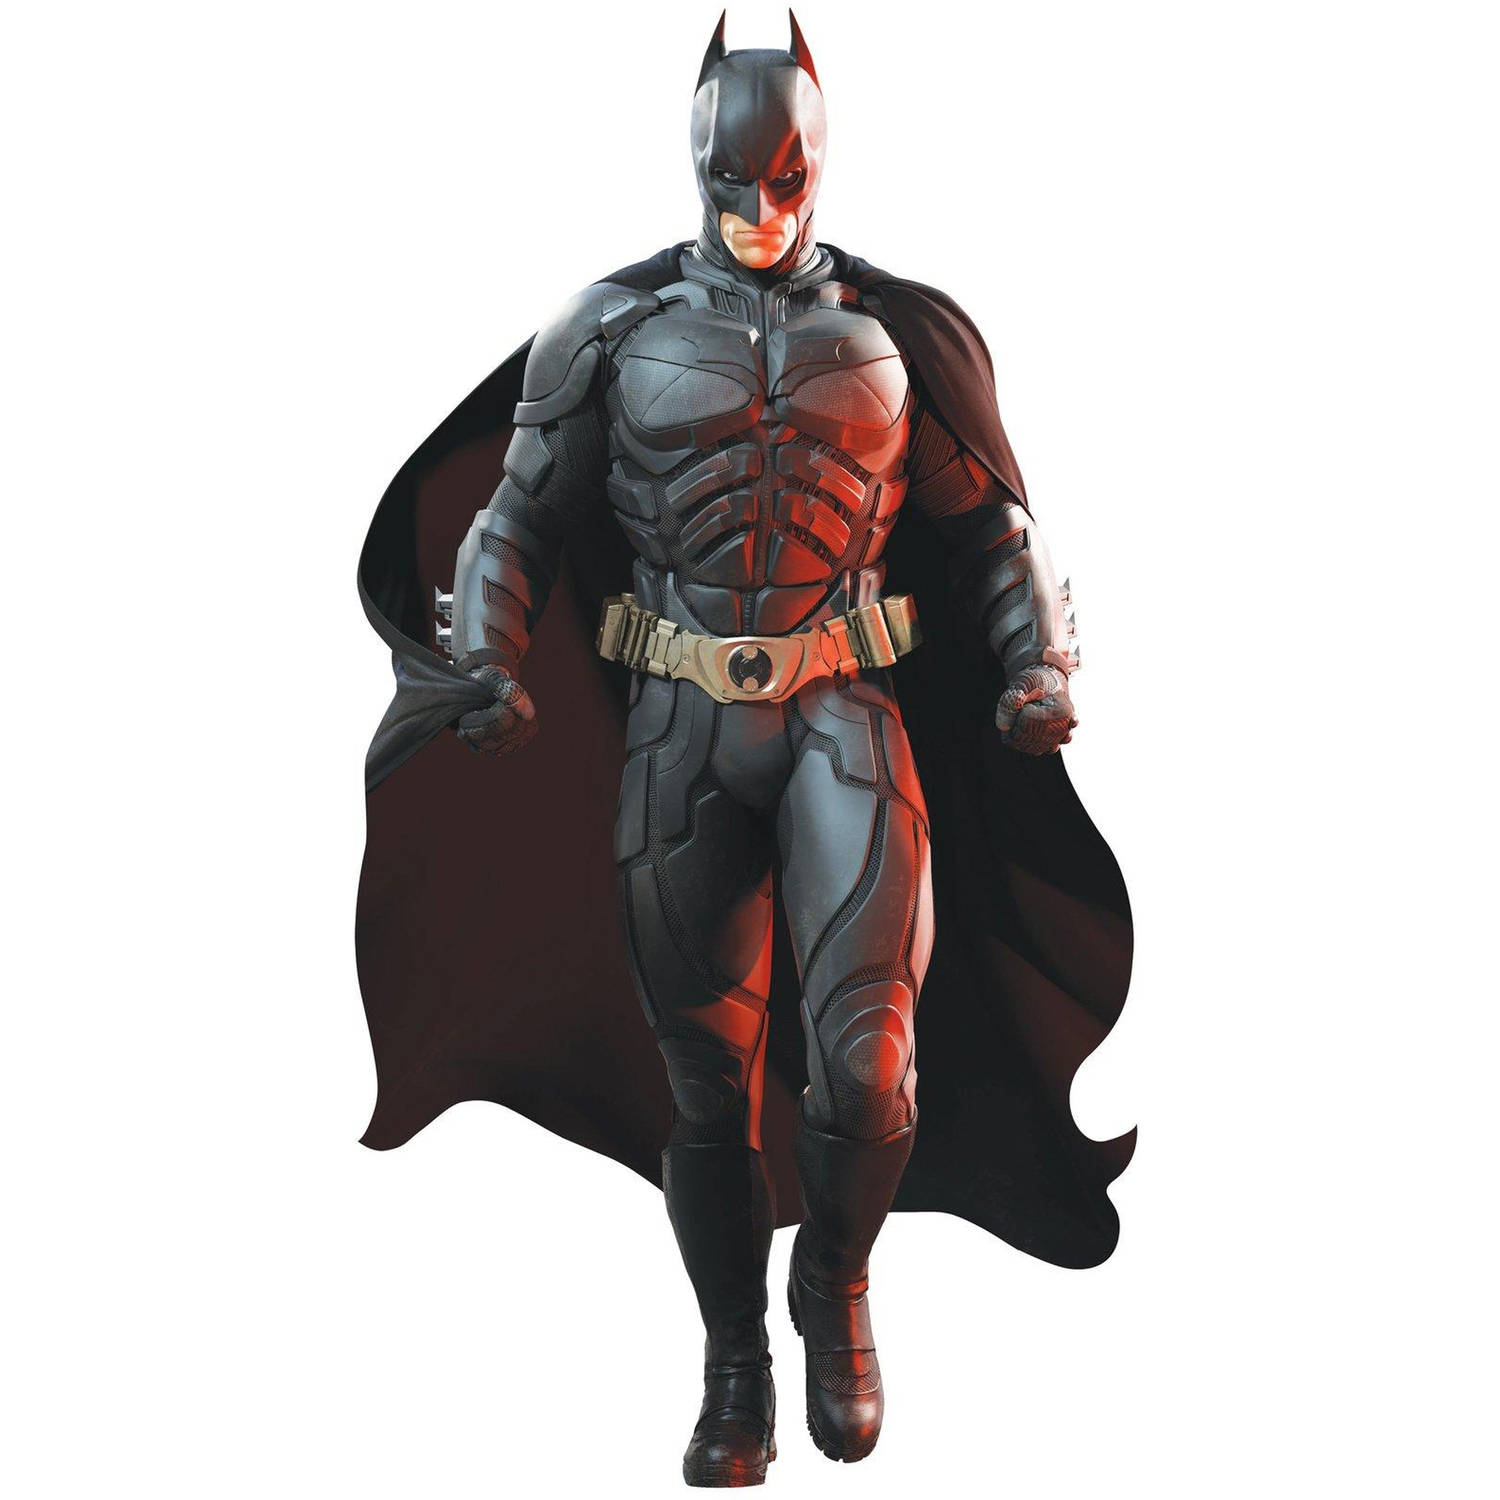 Batman the Dark Knight Standup, 6' Tall